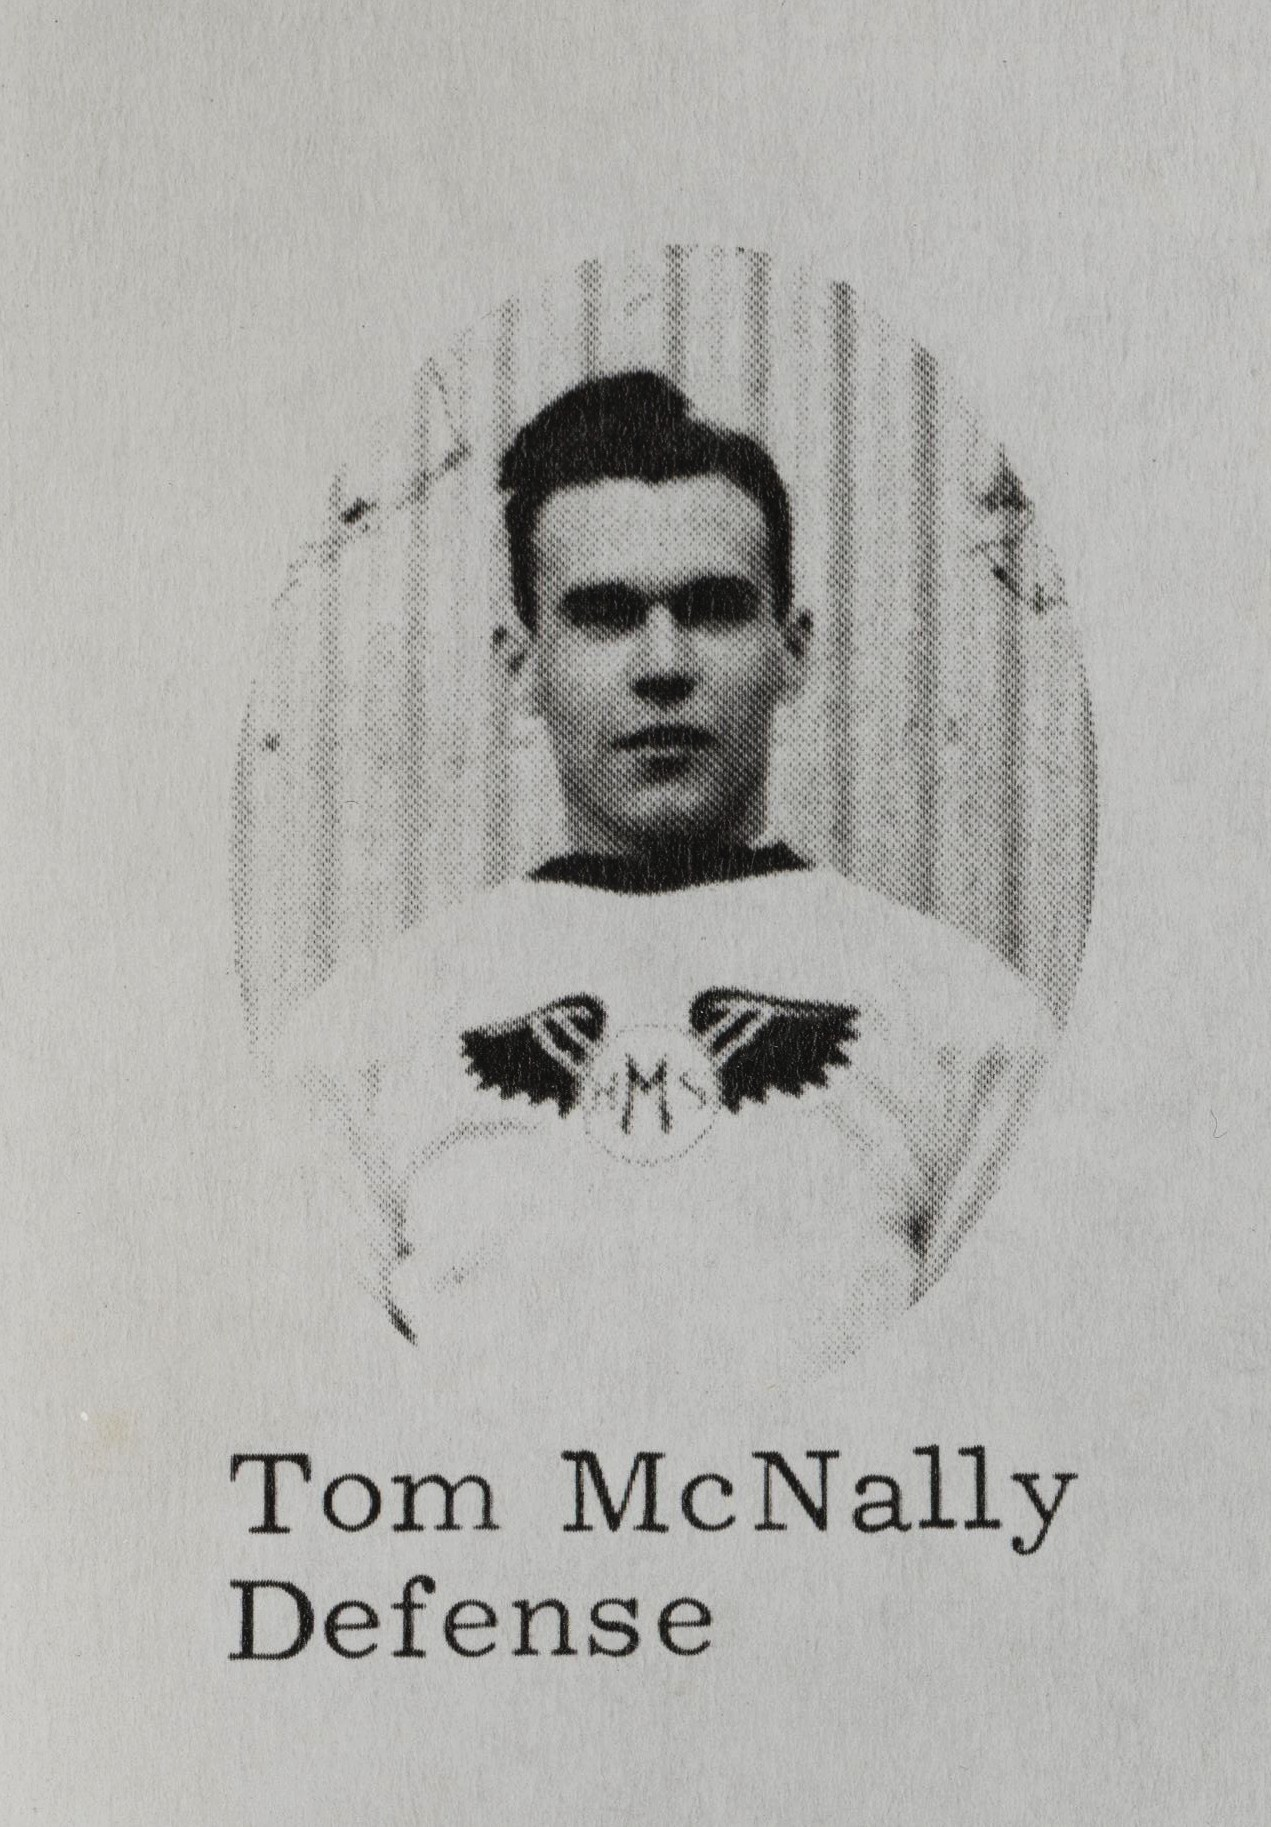 Tom McNally - Defense.jpg